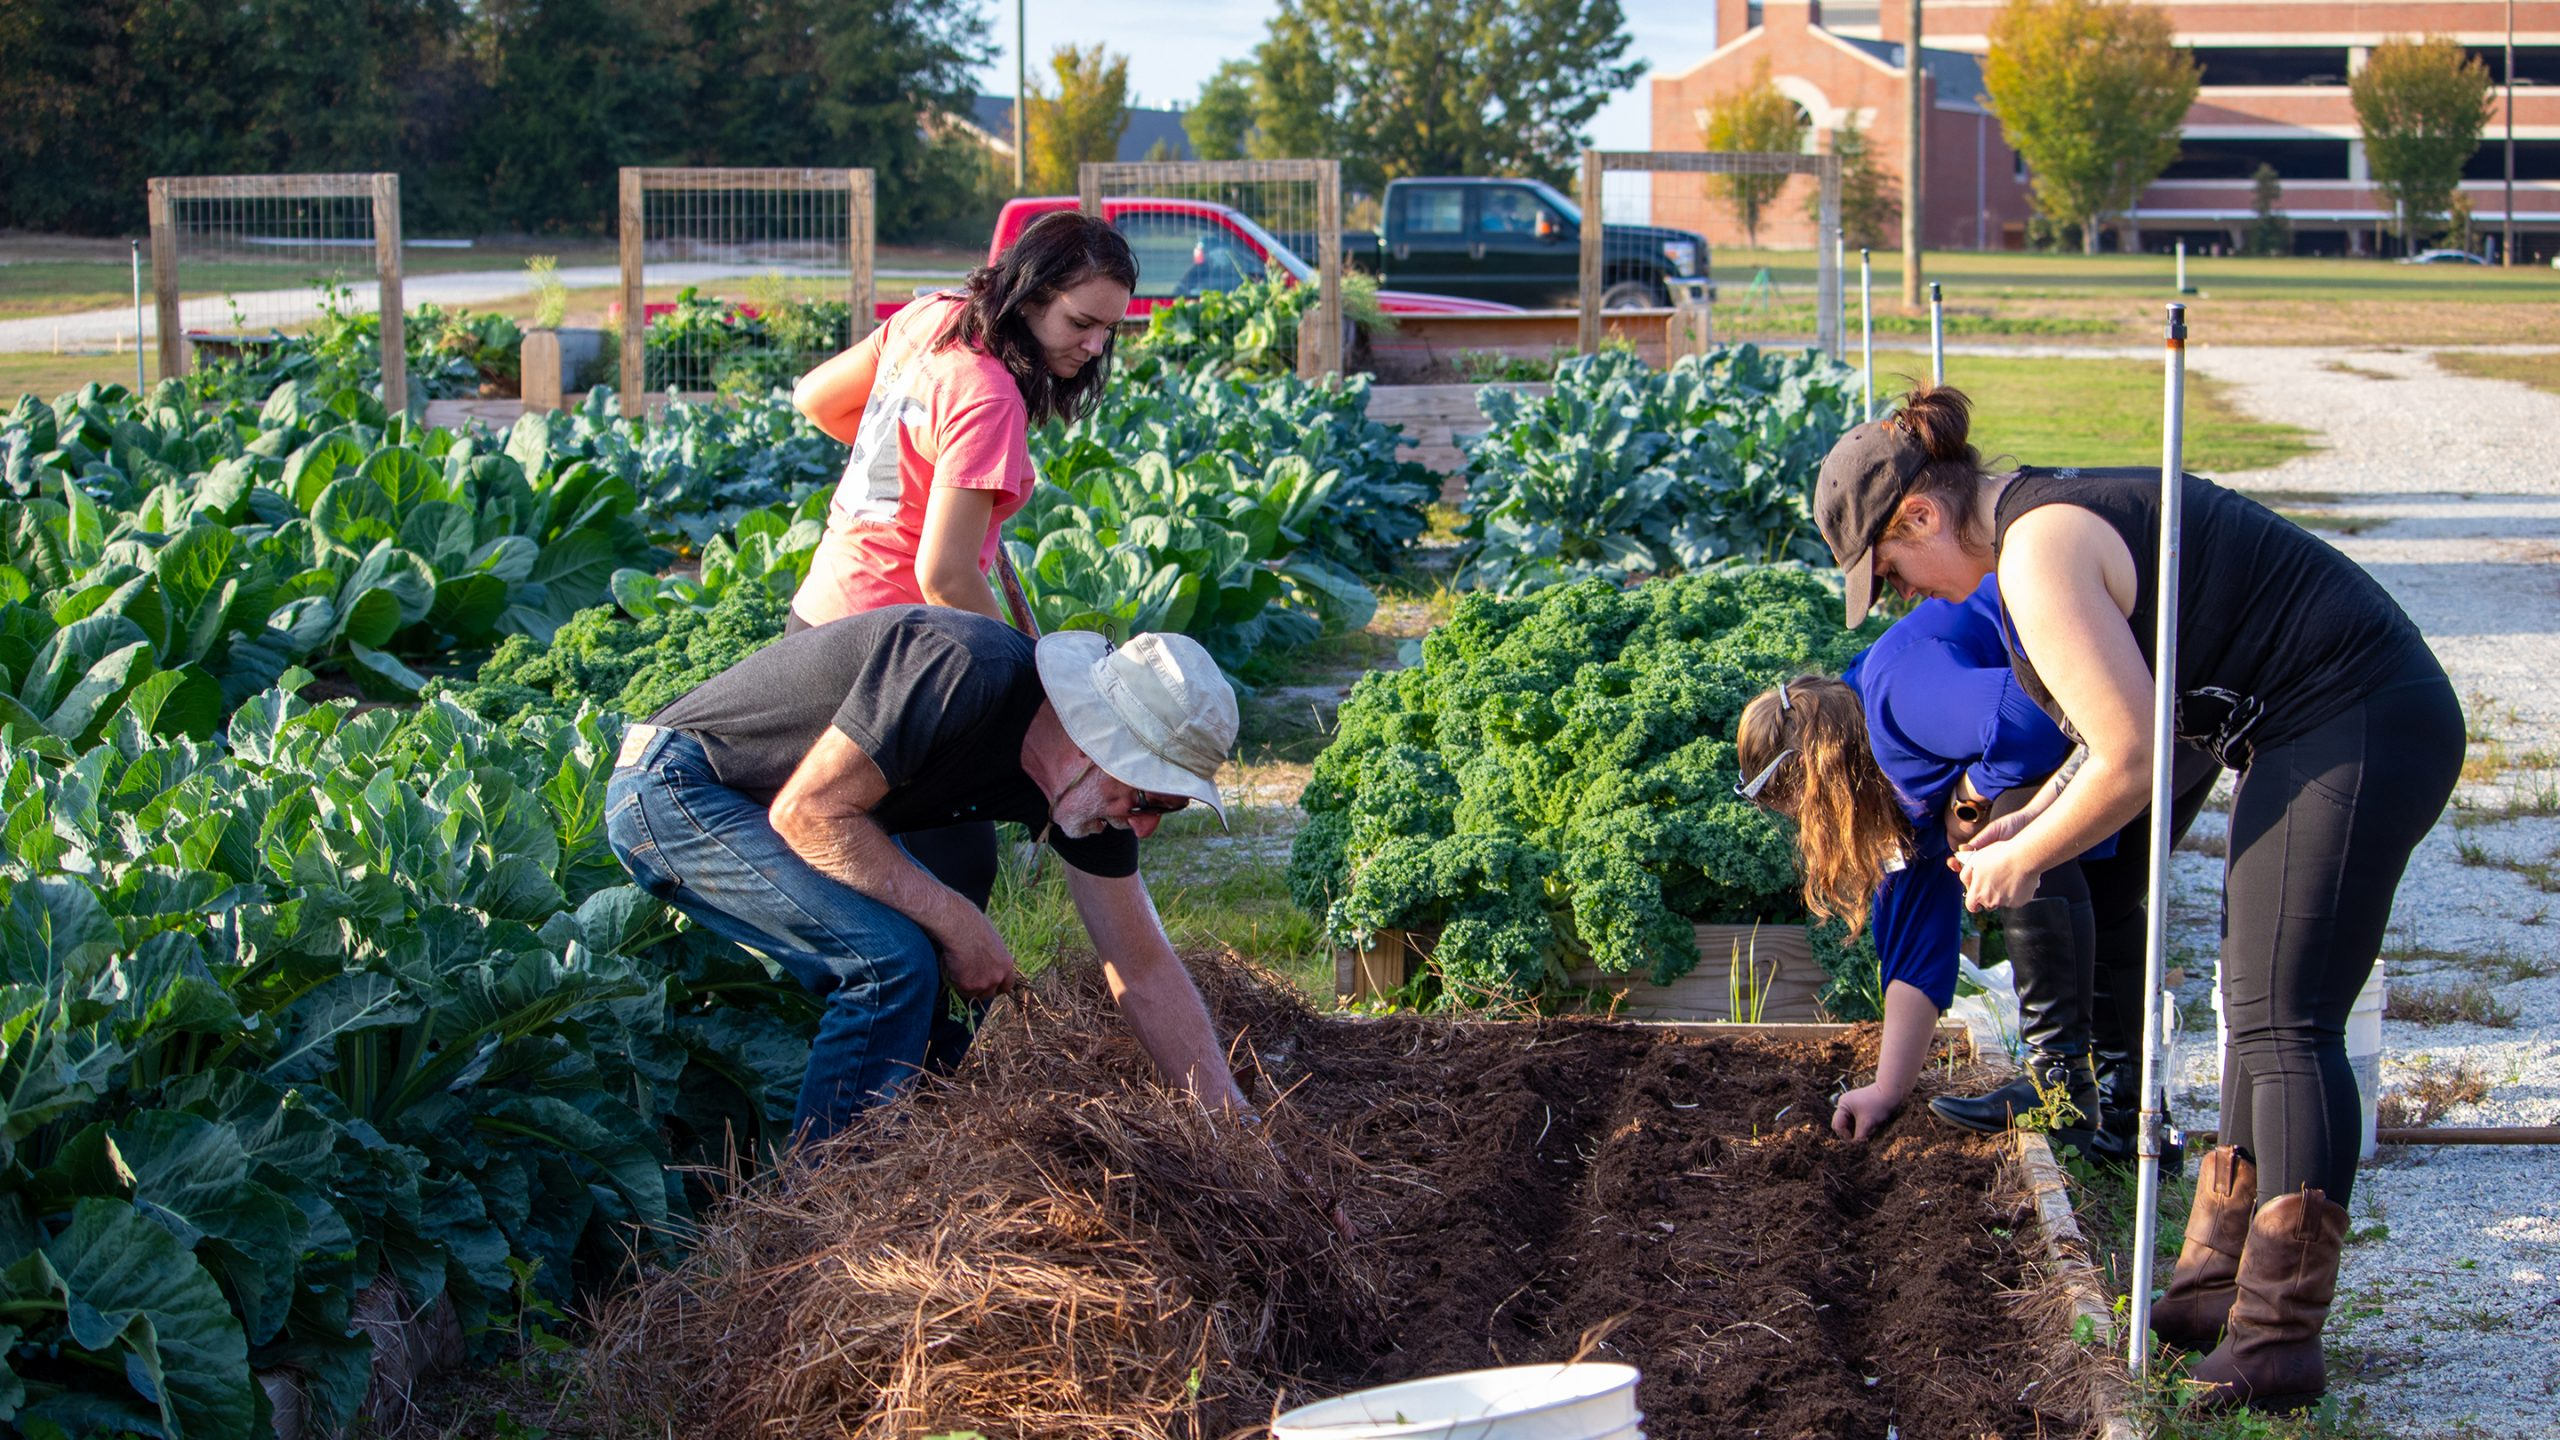 Students and faculty work in a small garden plot at the Transformation Garden